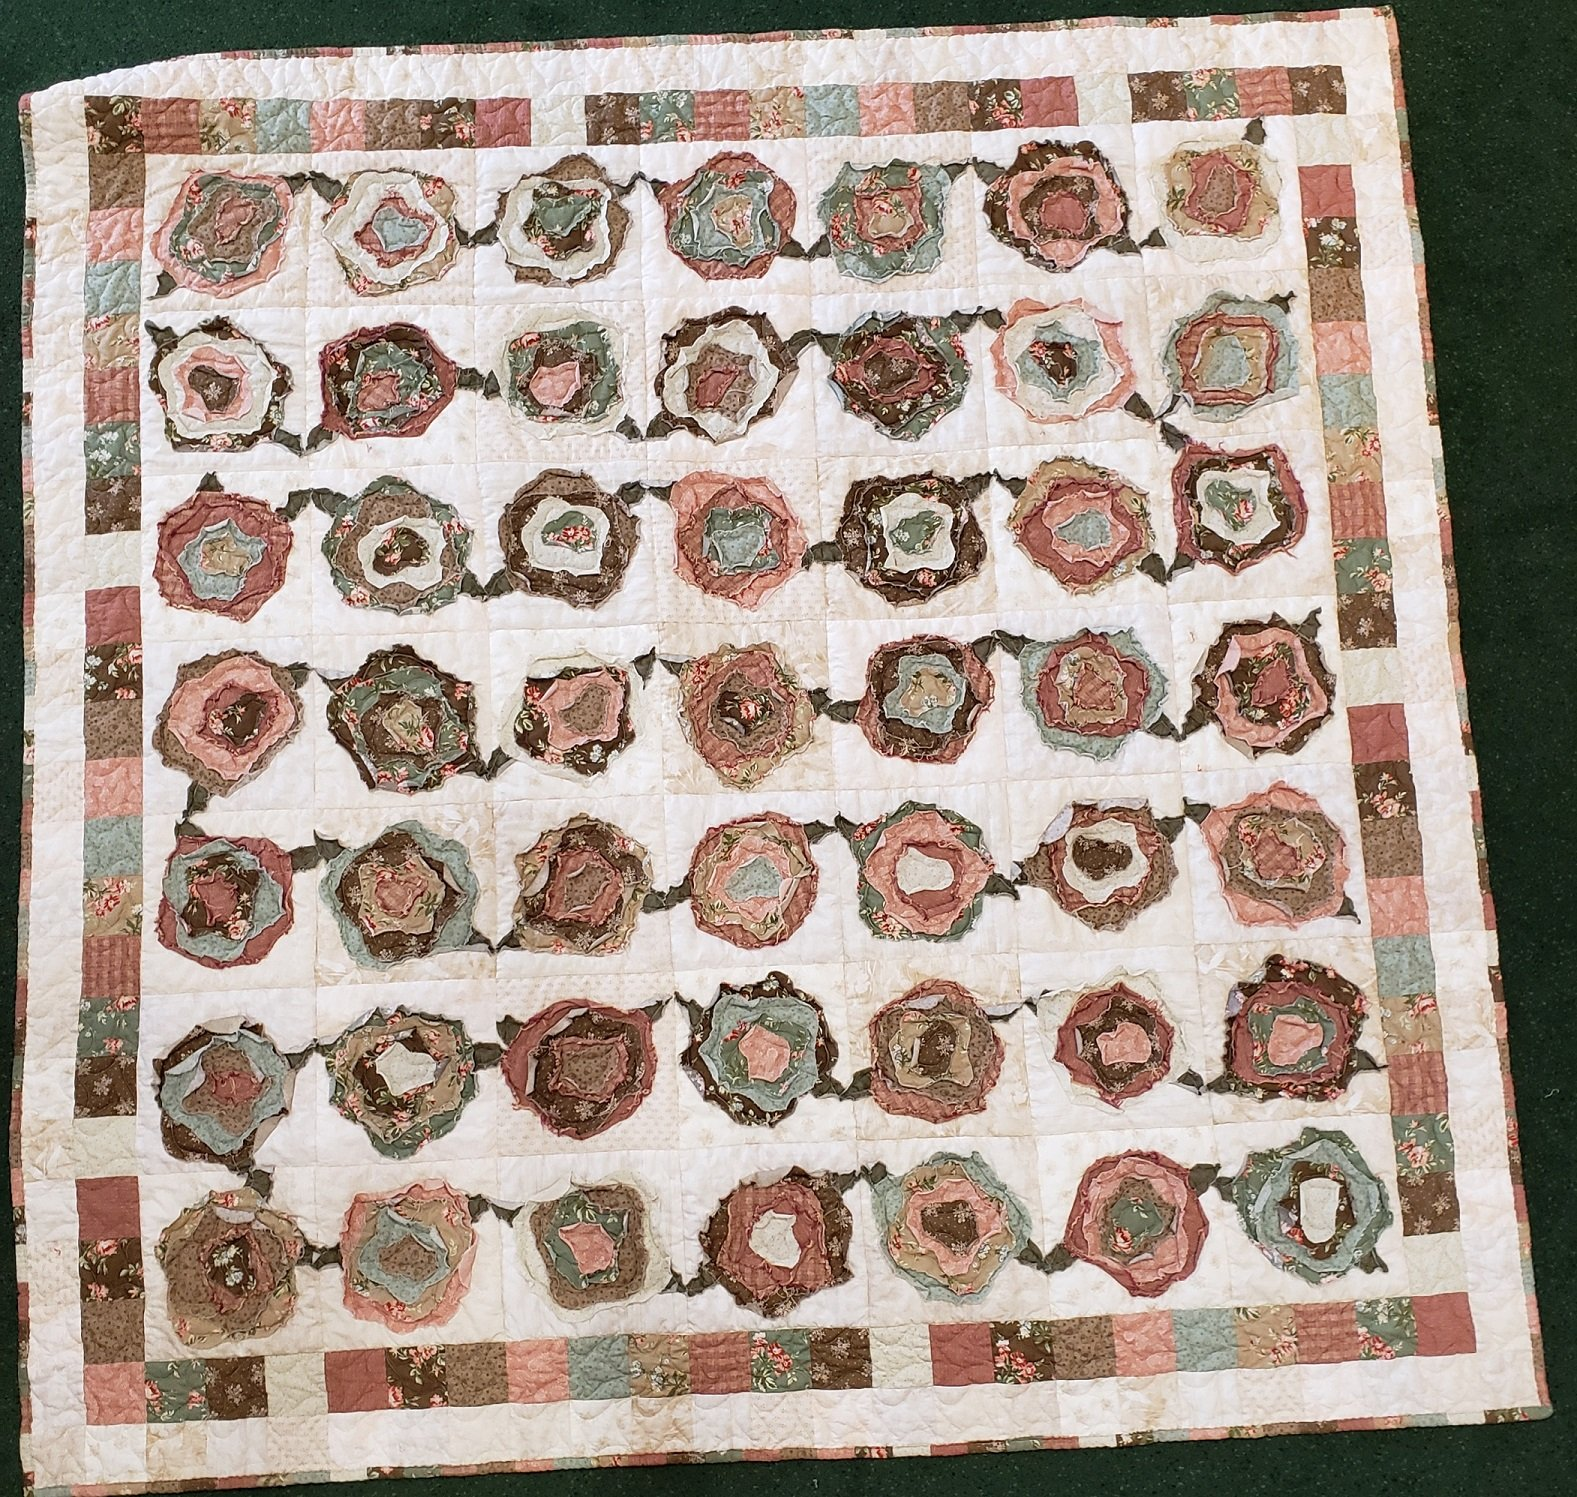 French Roses Quilt Kit - 75in x 75in